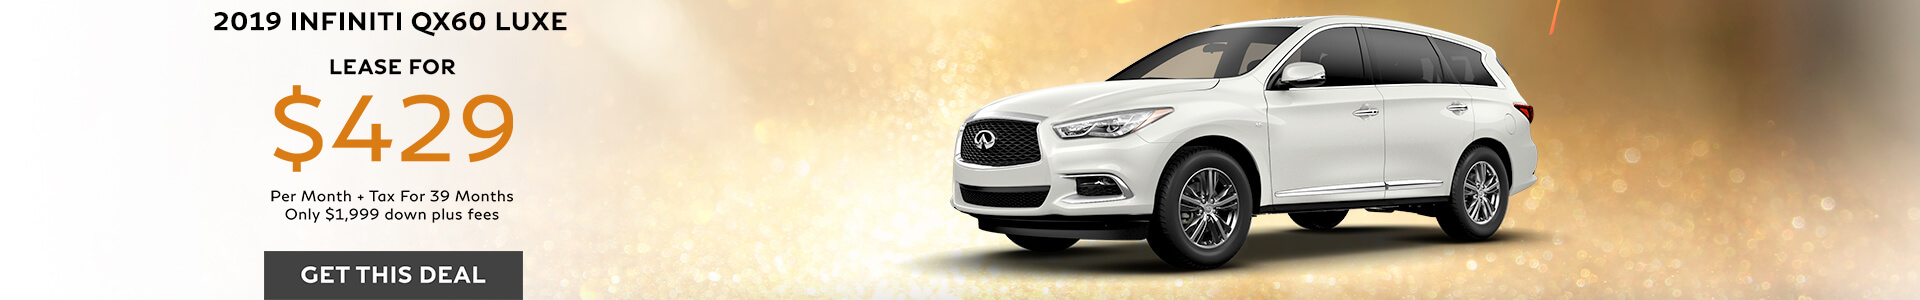 QX60 LUXE - Lease for $429